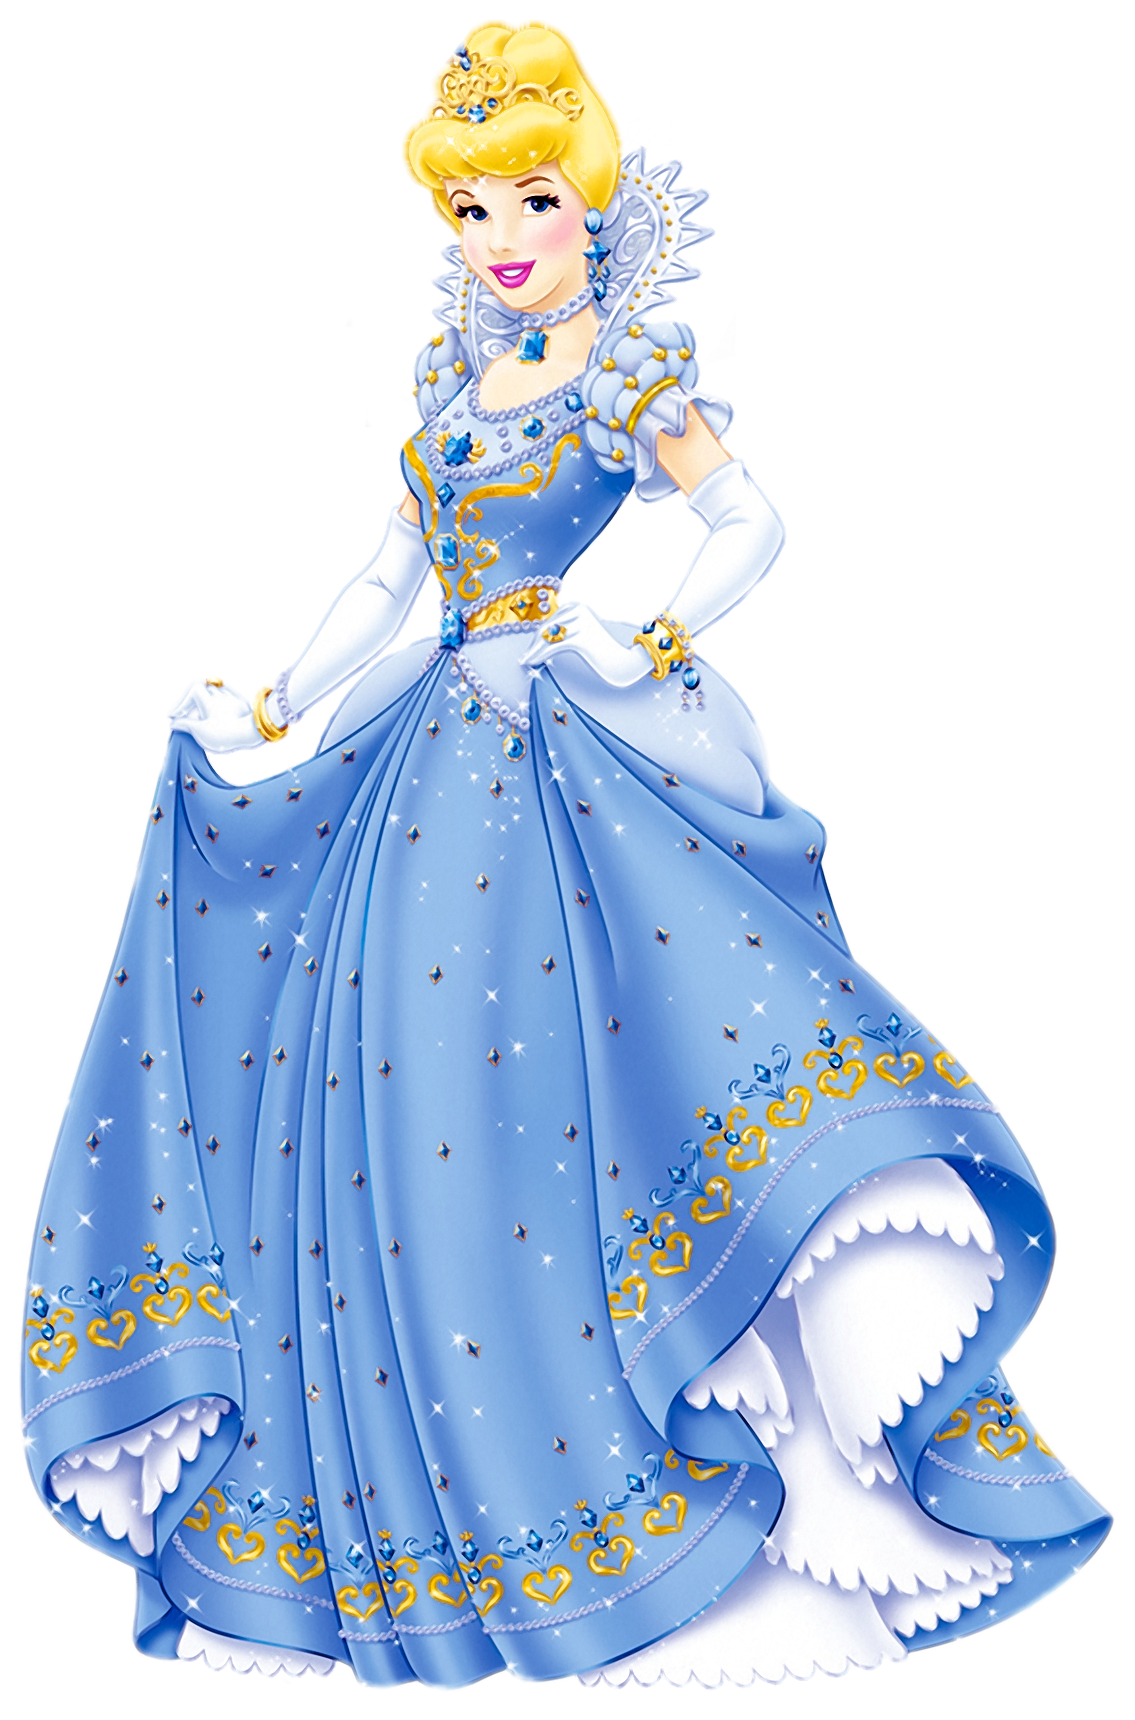 Princess clipart png. Transparent gallery yopriceville high